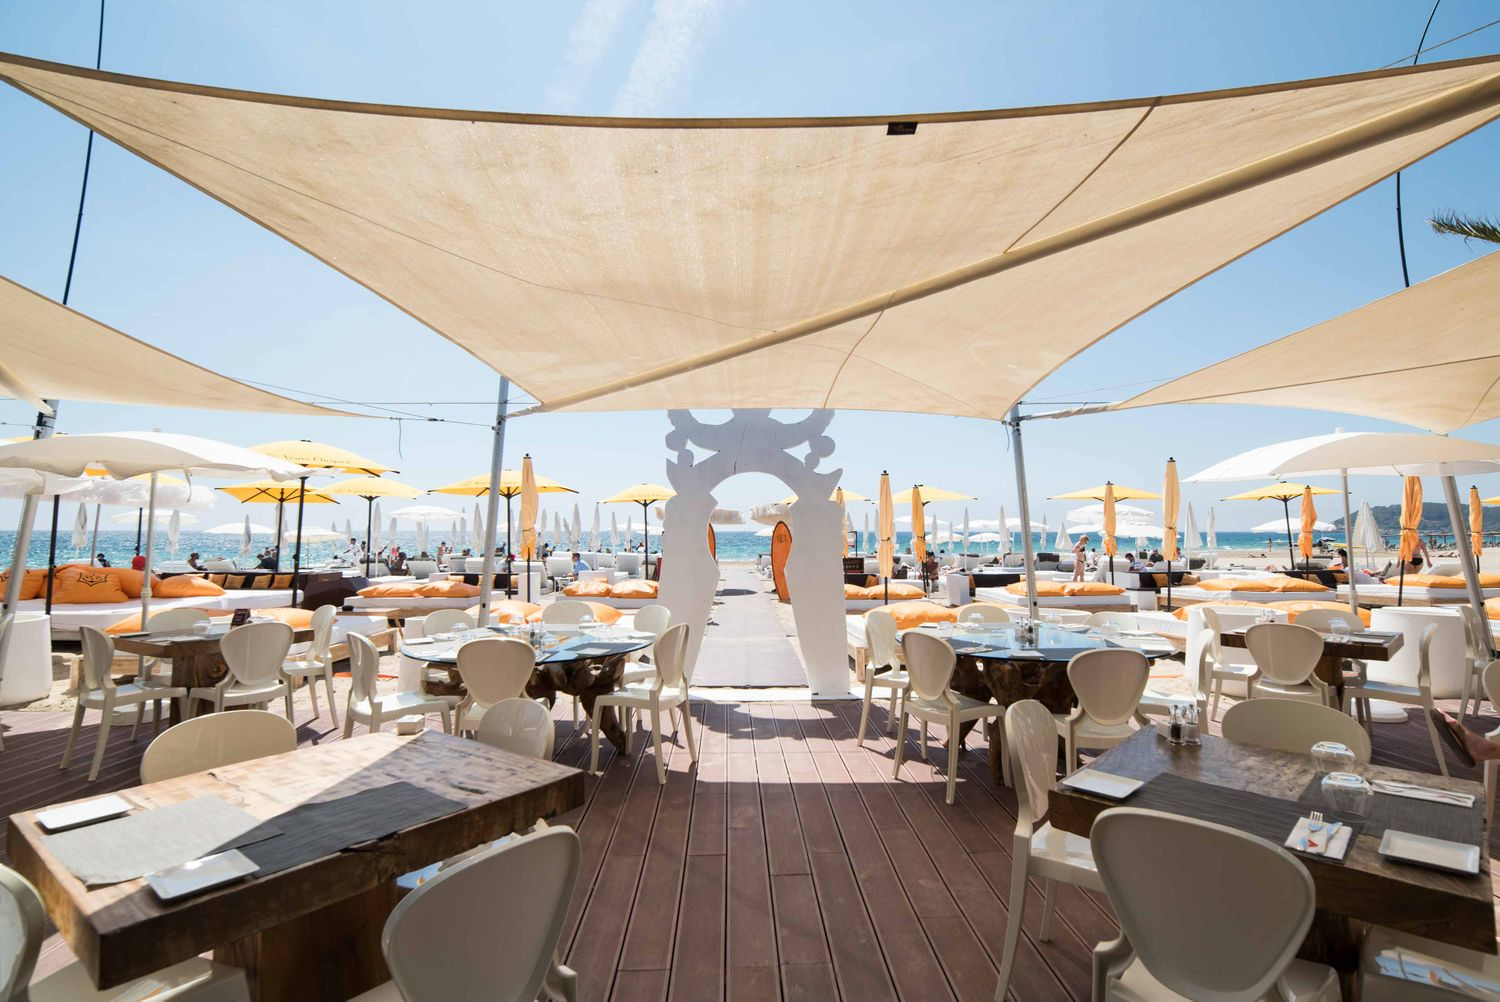 Ushuaïa Beach Club Restaurant